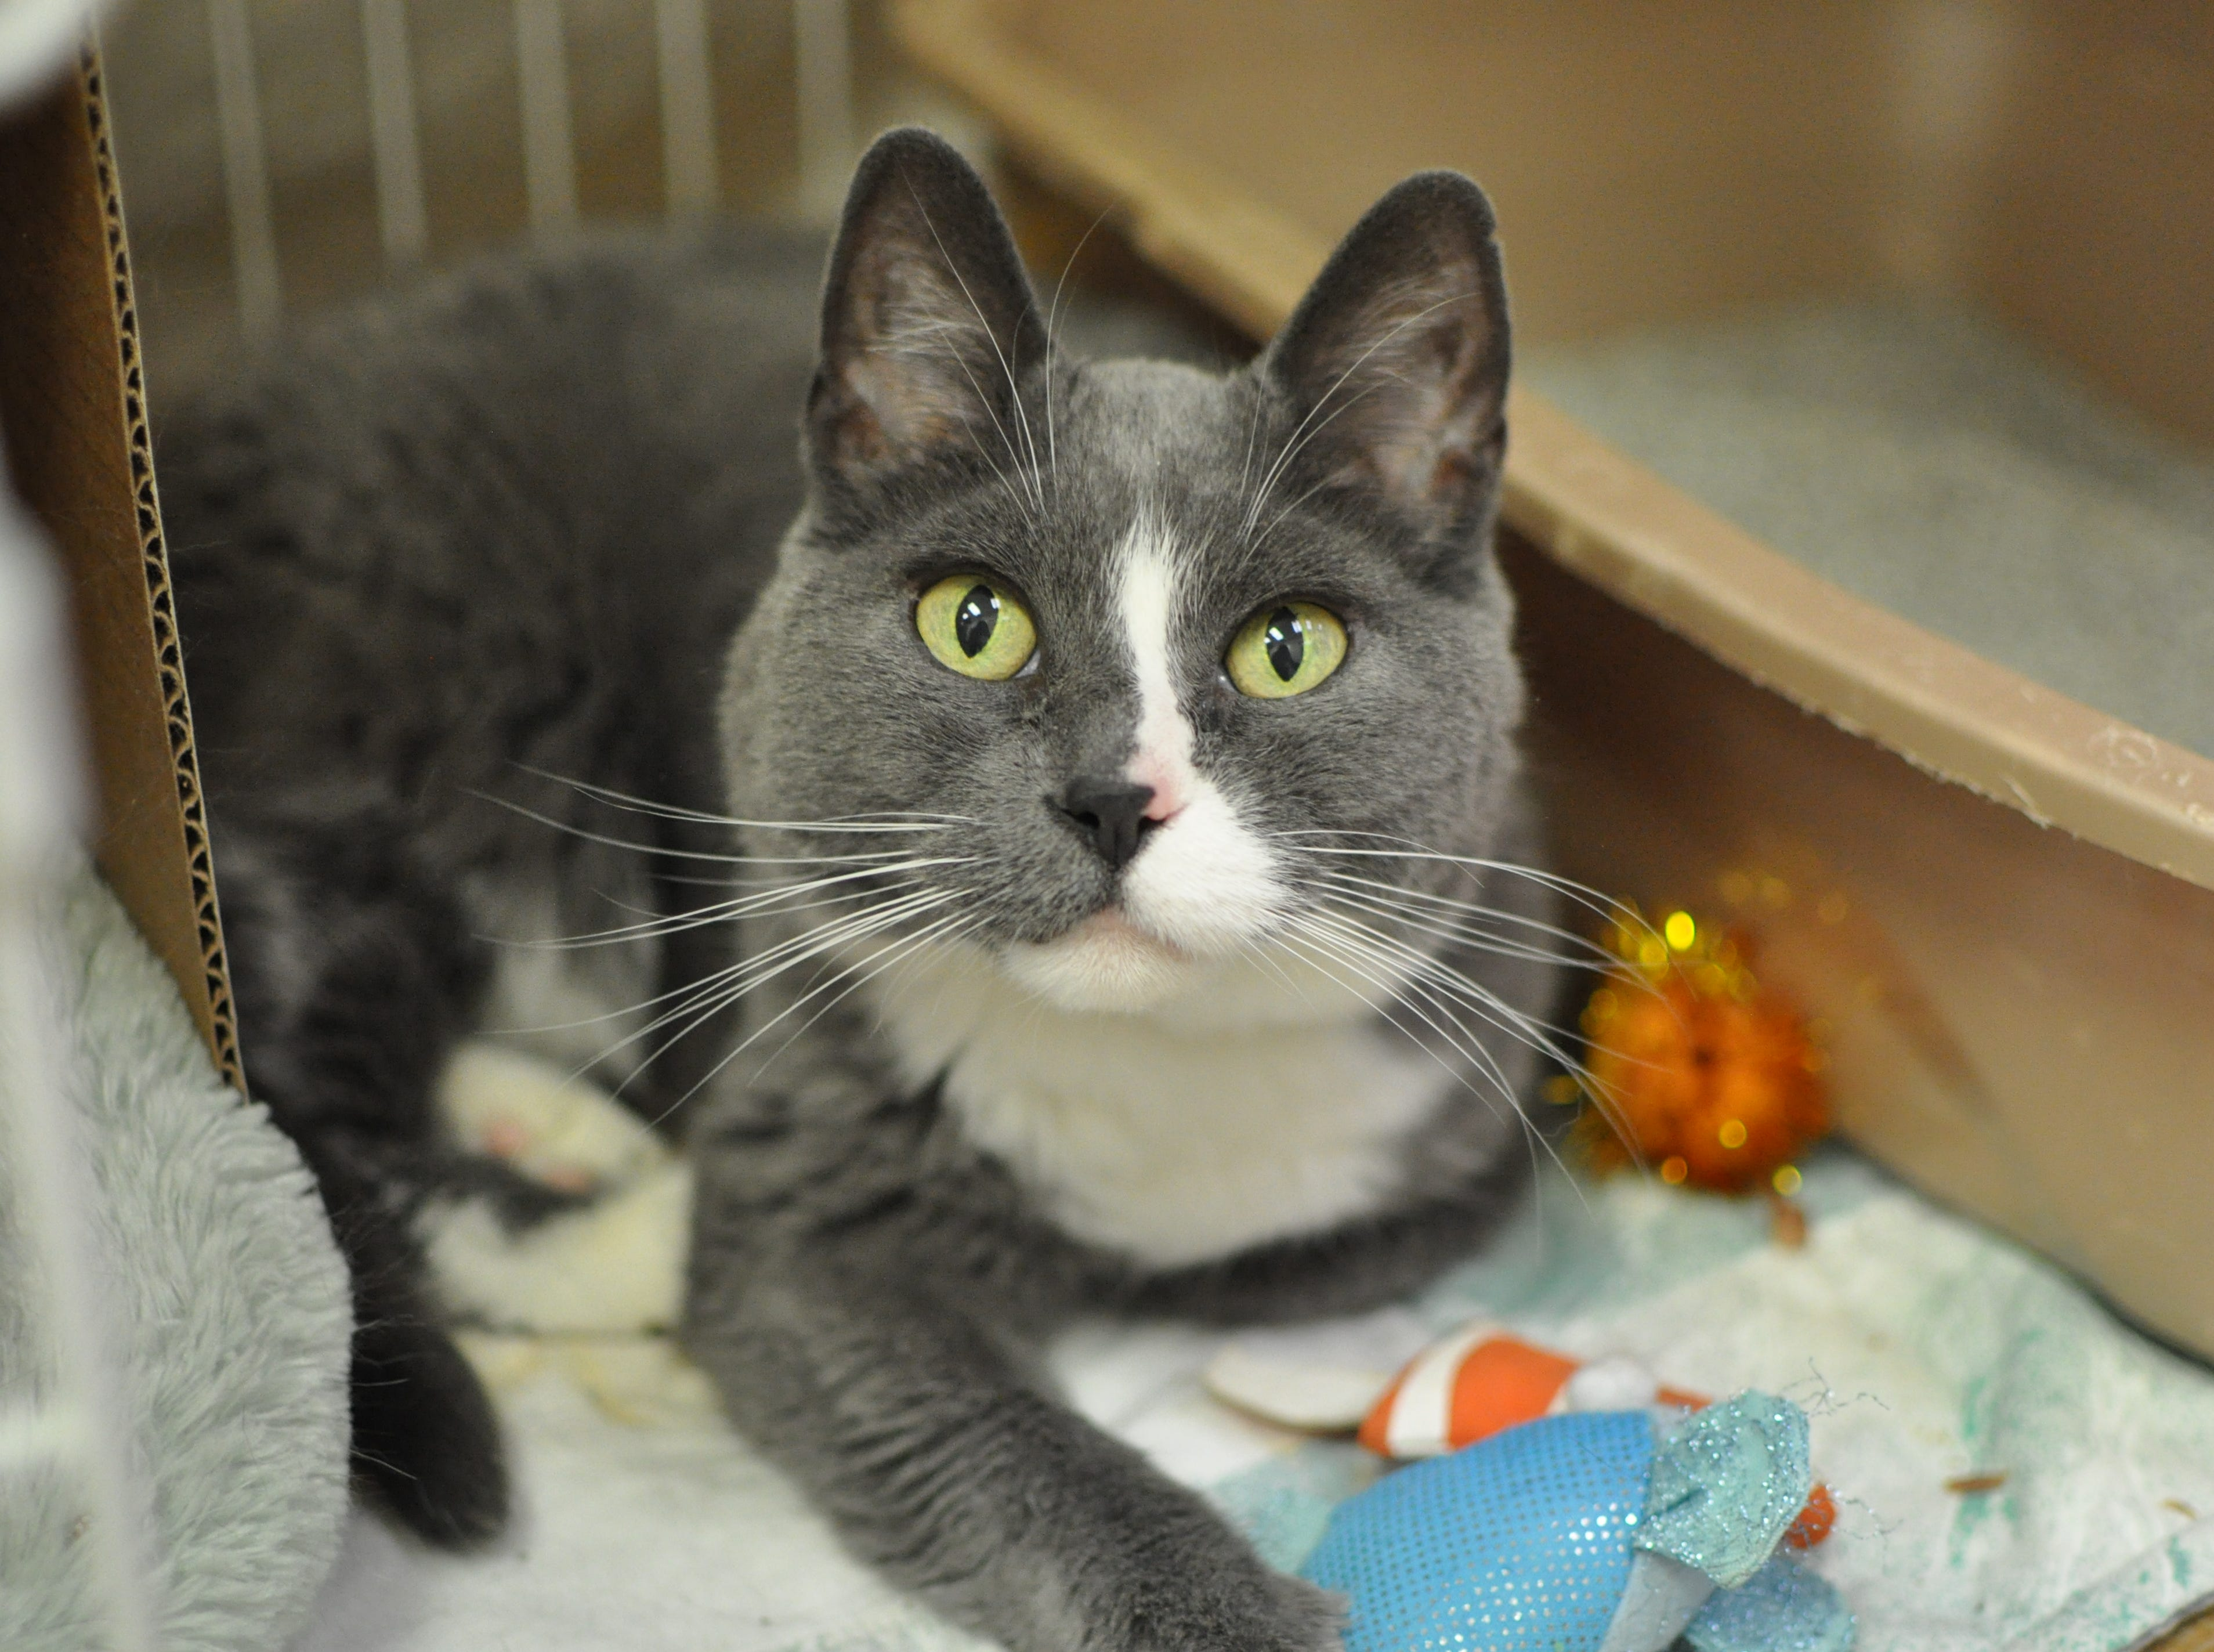 Flash, 12, loves cuddling with her person and other cats. She is spayed.